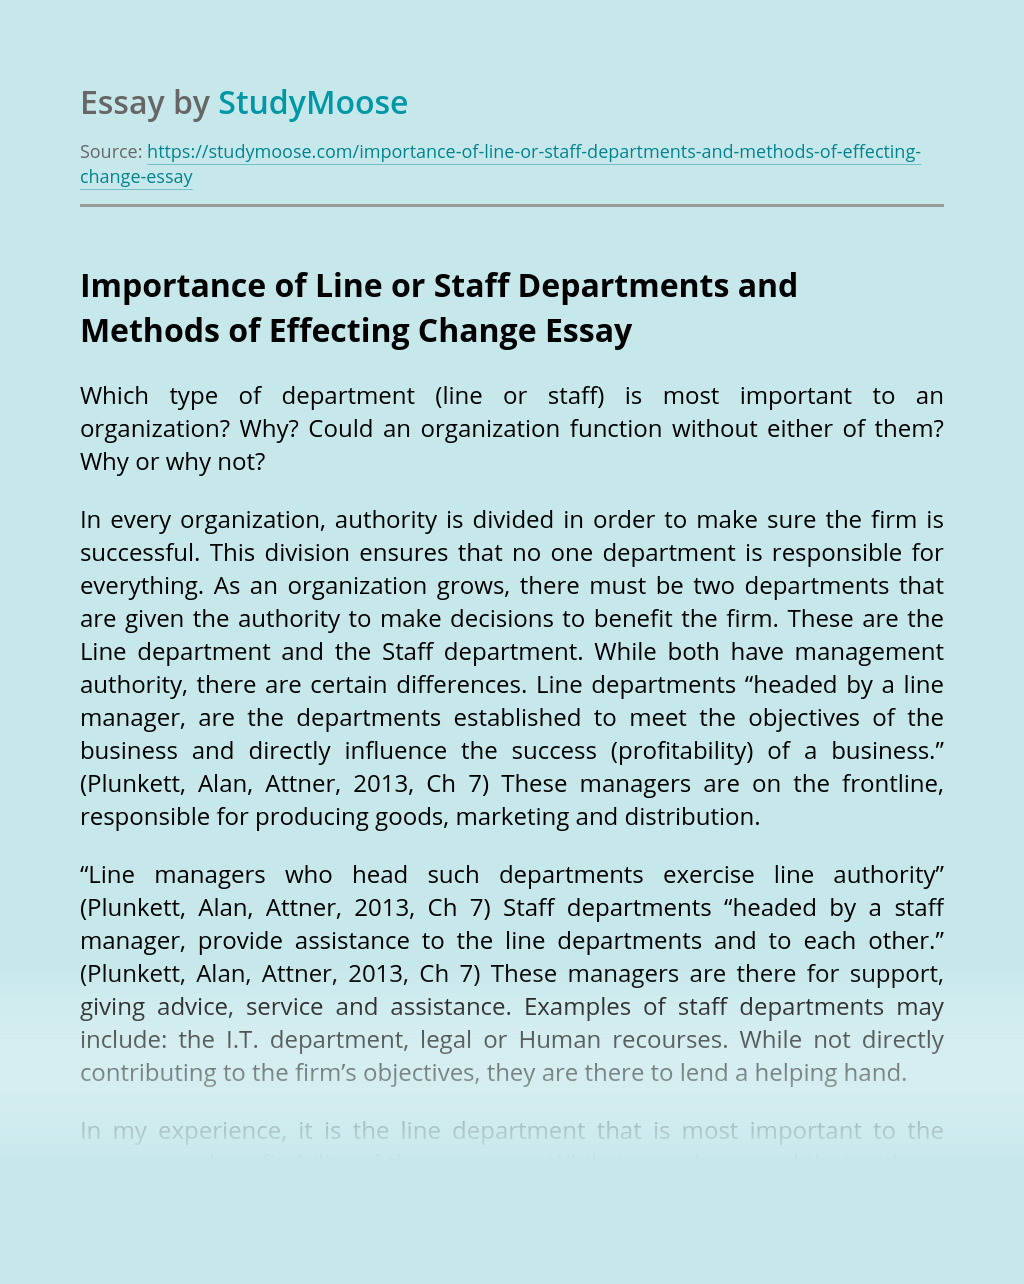 Importance of Line or Staff Departments and Methods of Effecting Change